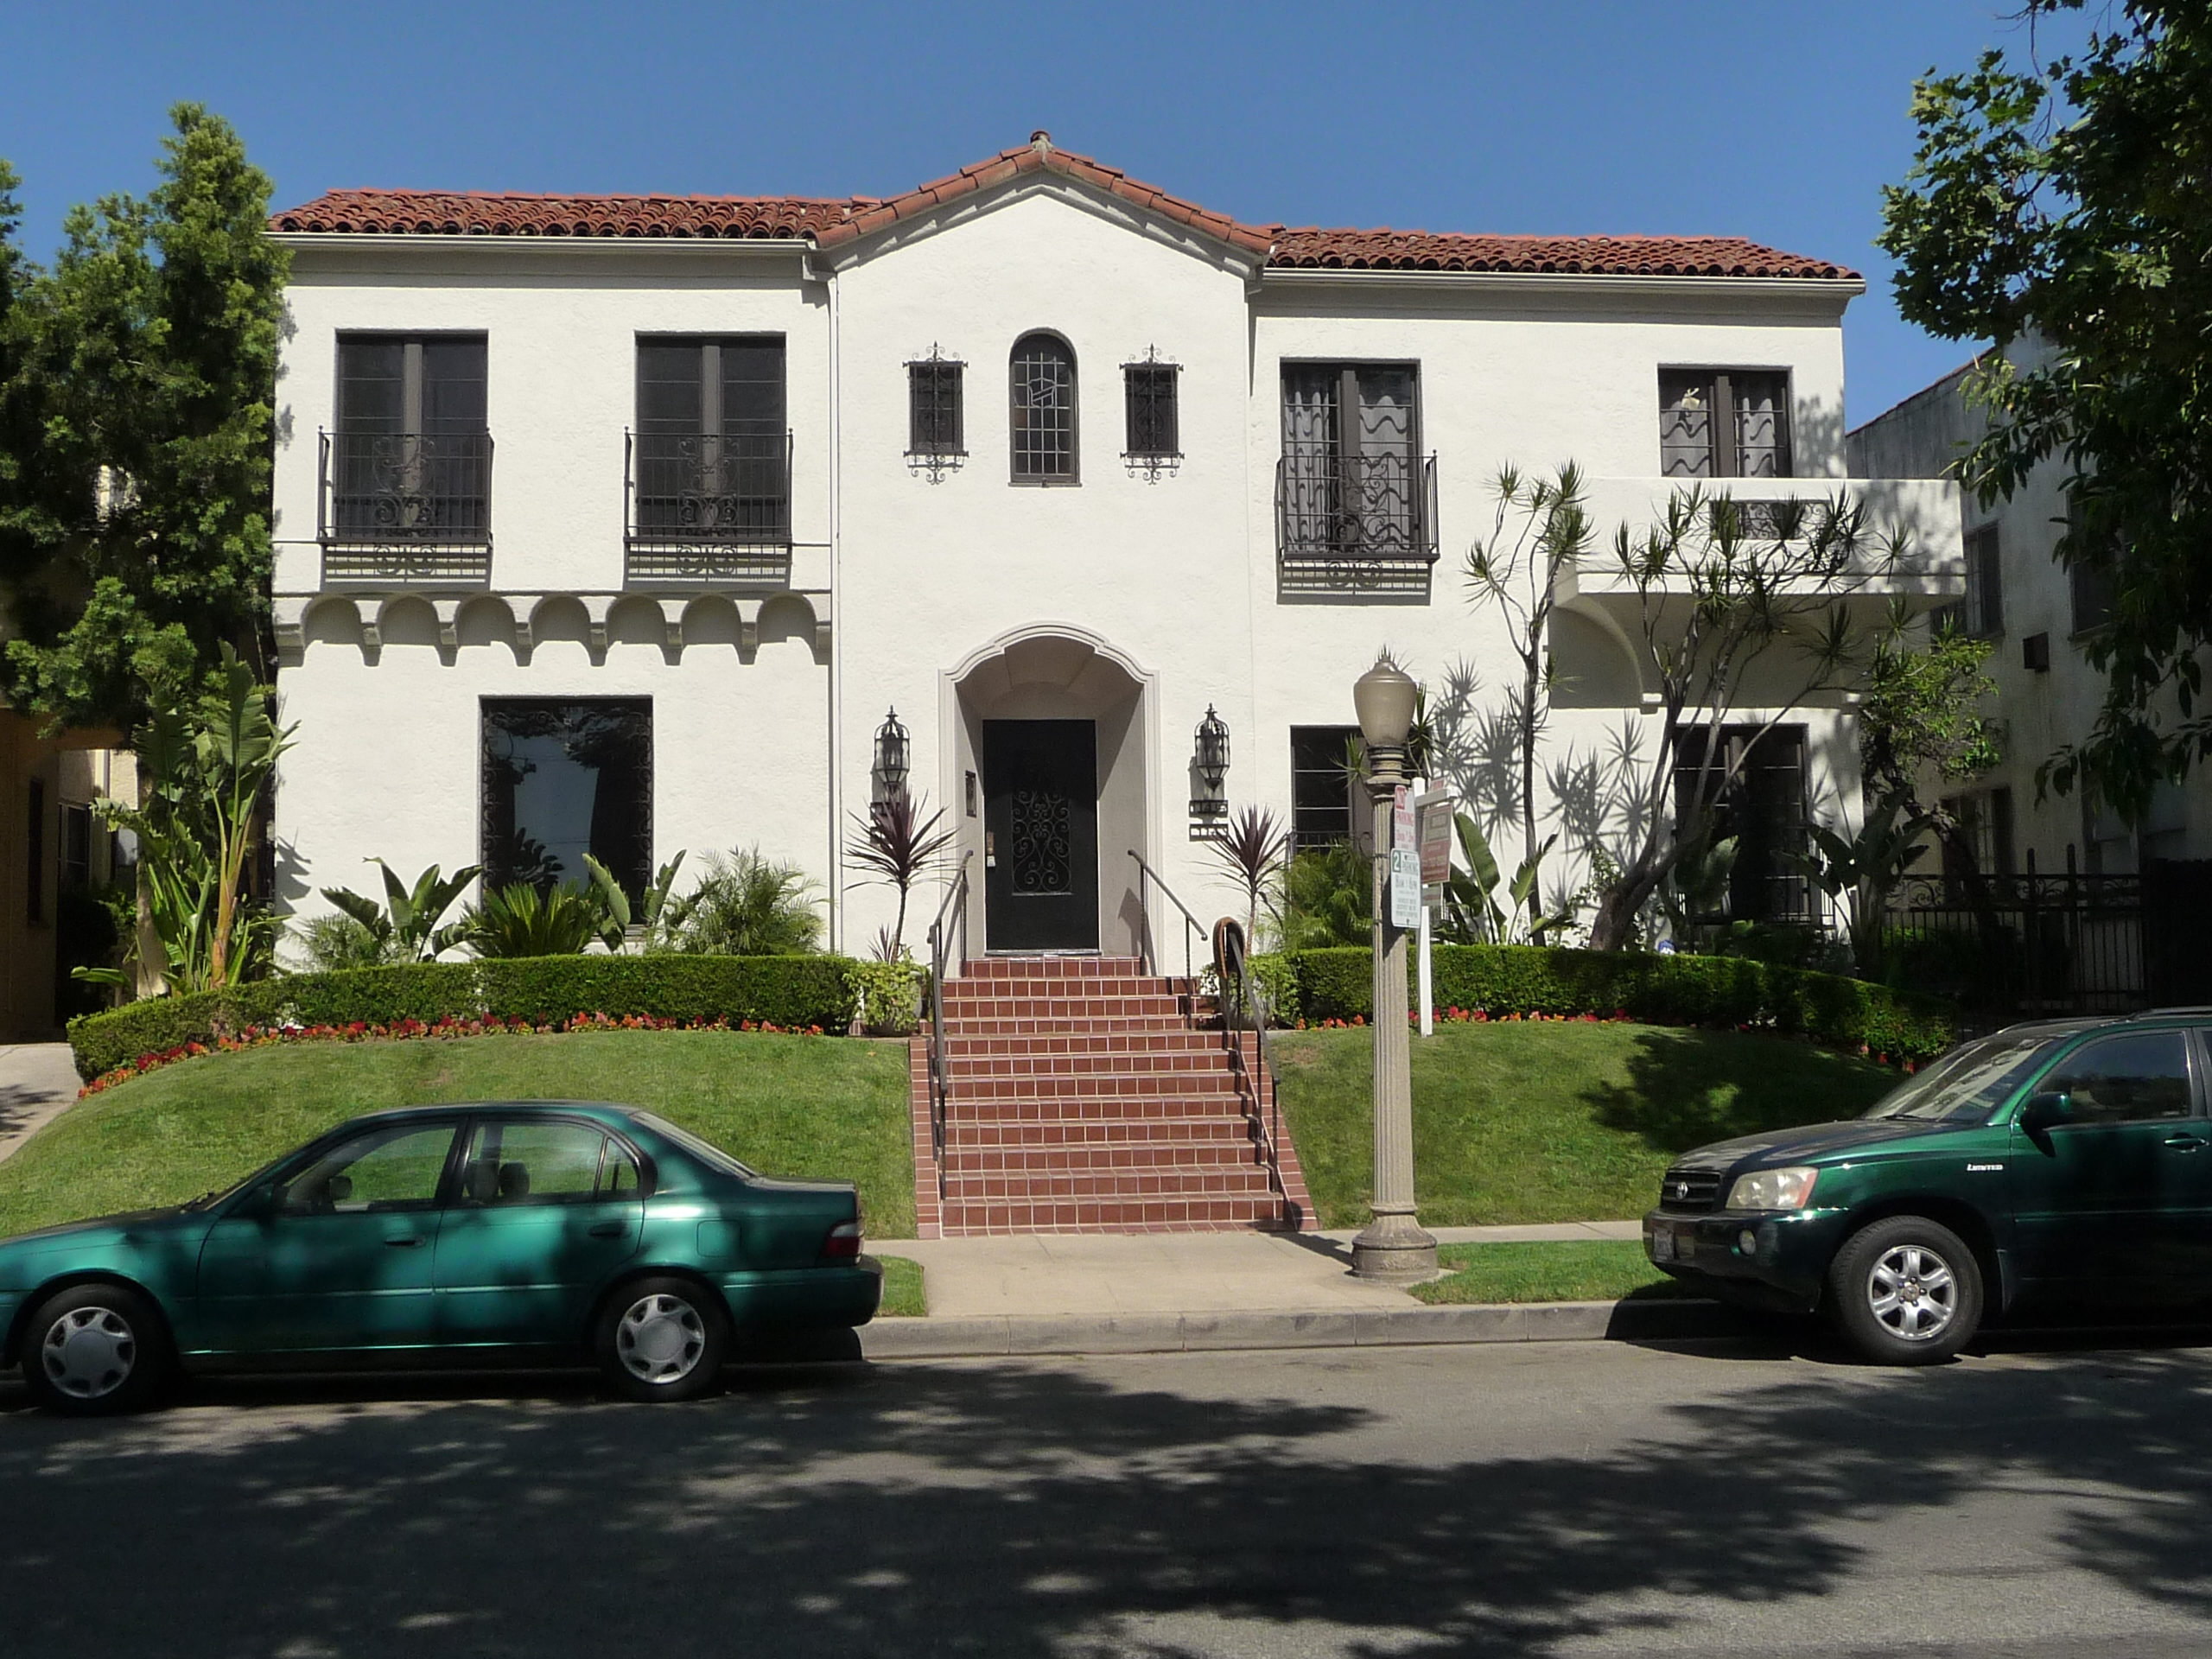 116 N SYCAMORE AVE - PHOTO